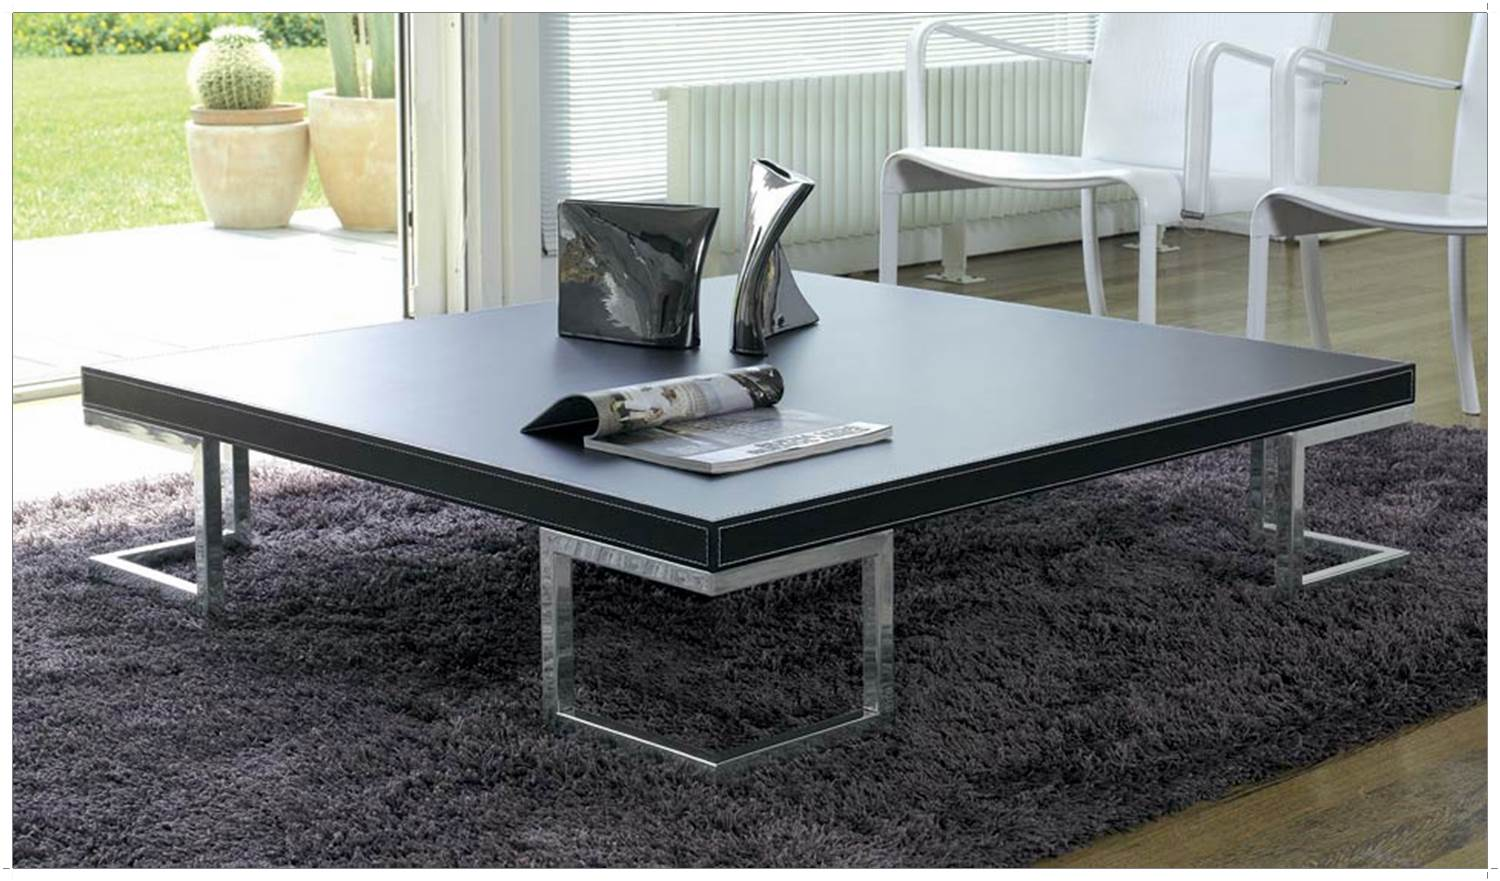 grande table basse de salon id es de d coration int rieure french decor. Black Bedroom Furniture Sets. Home Design Ideas